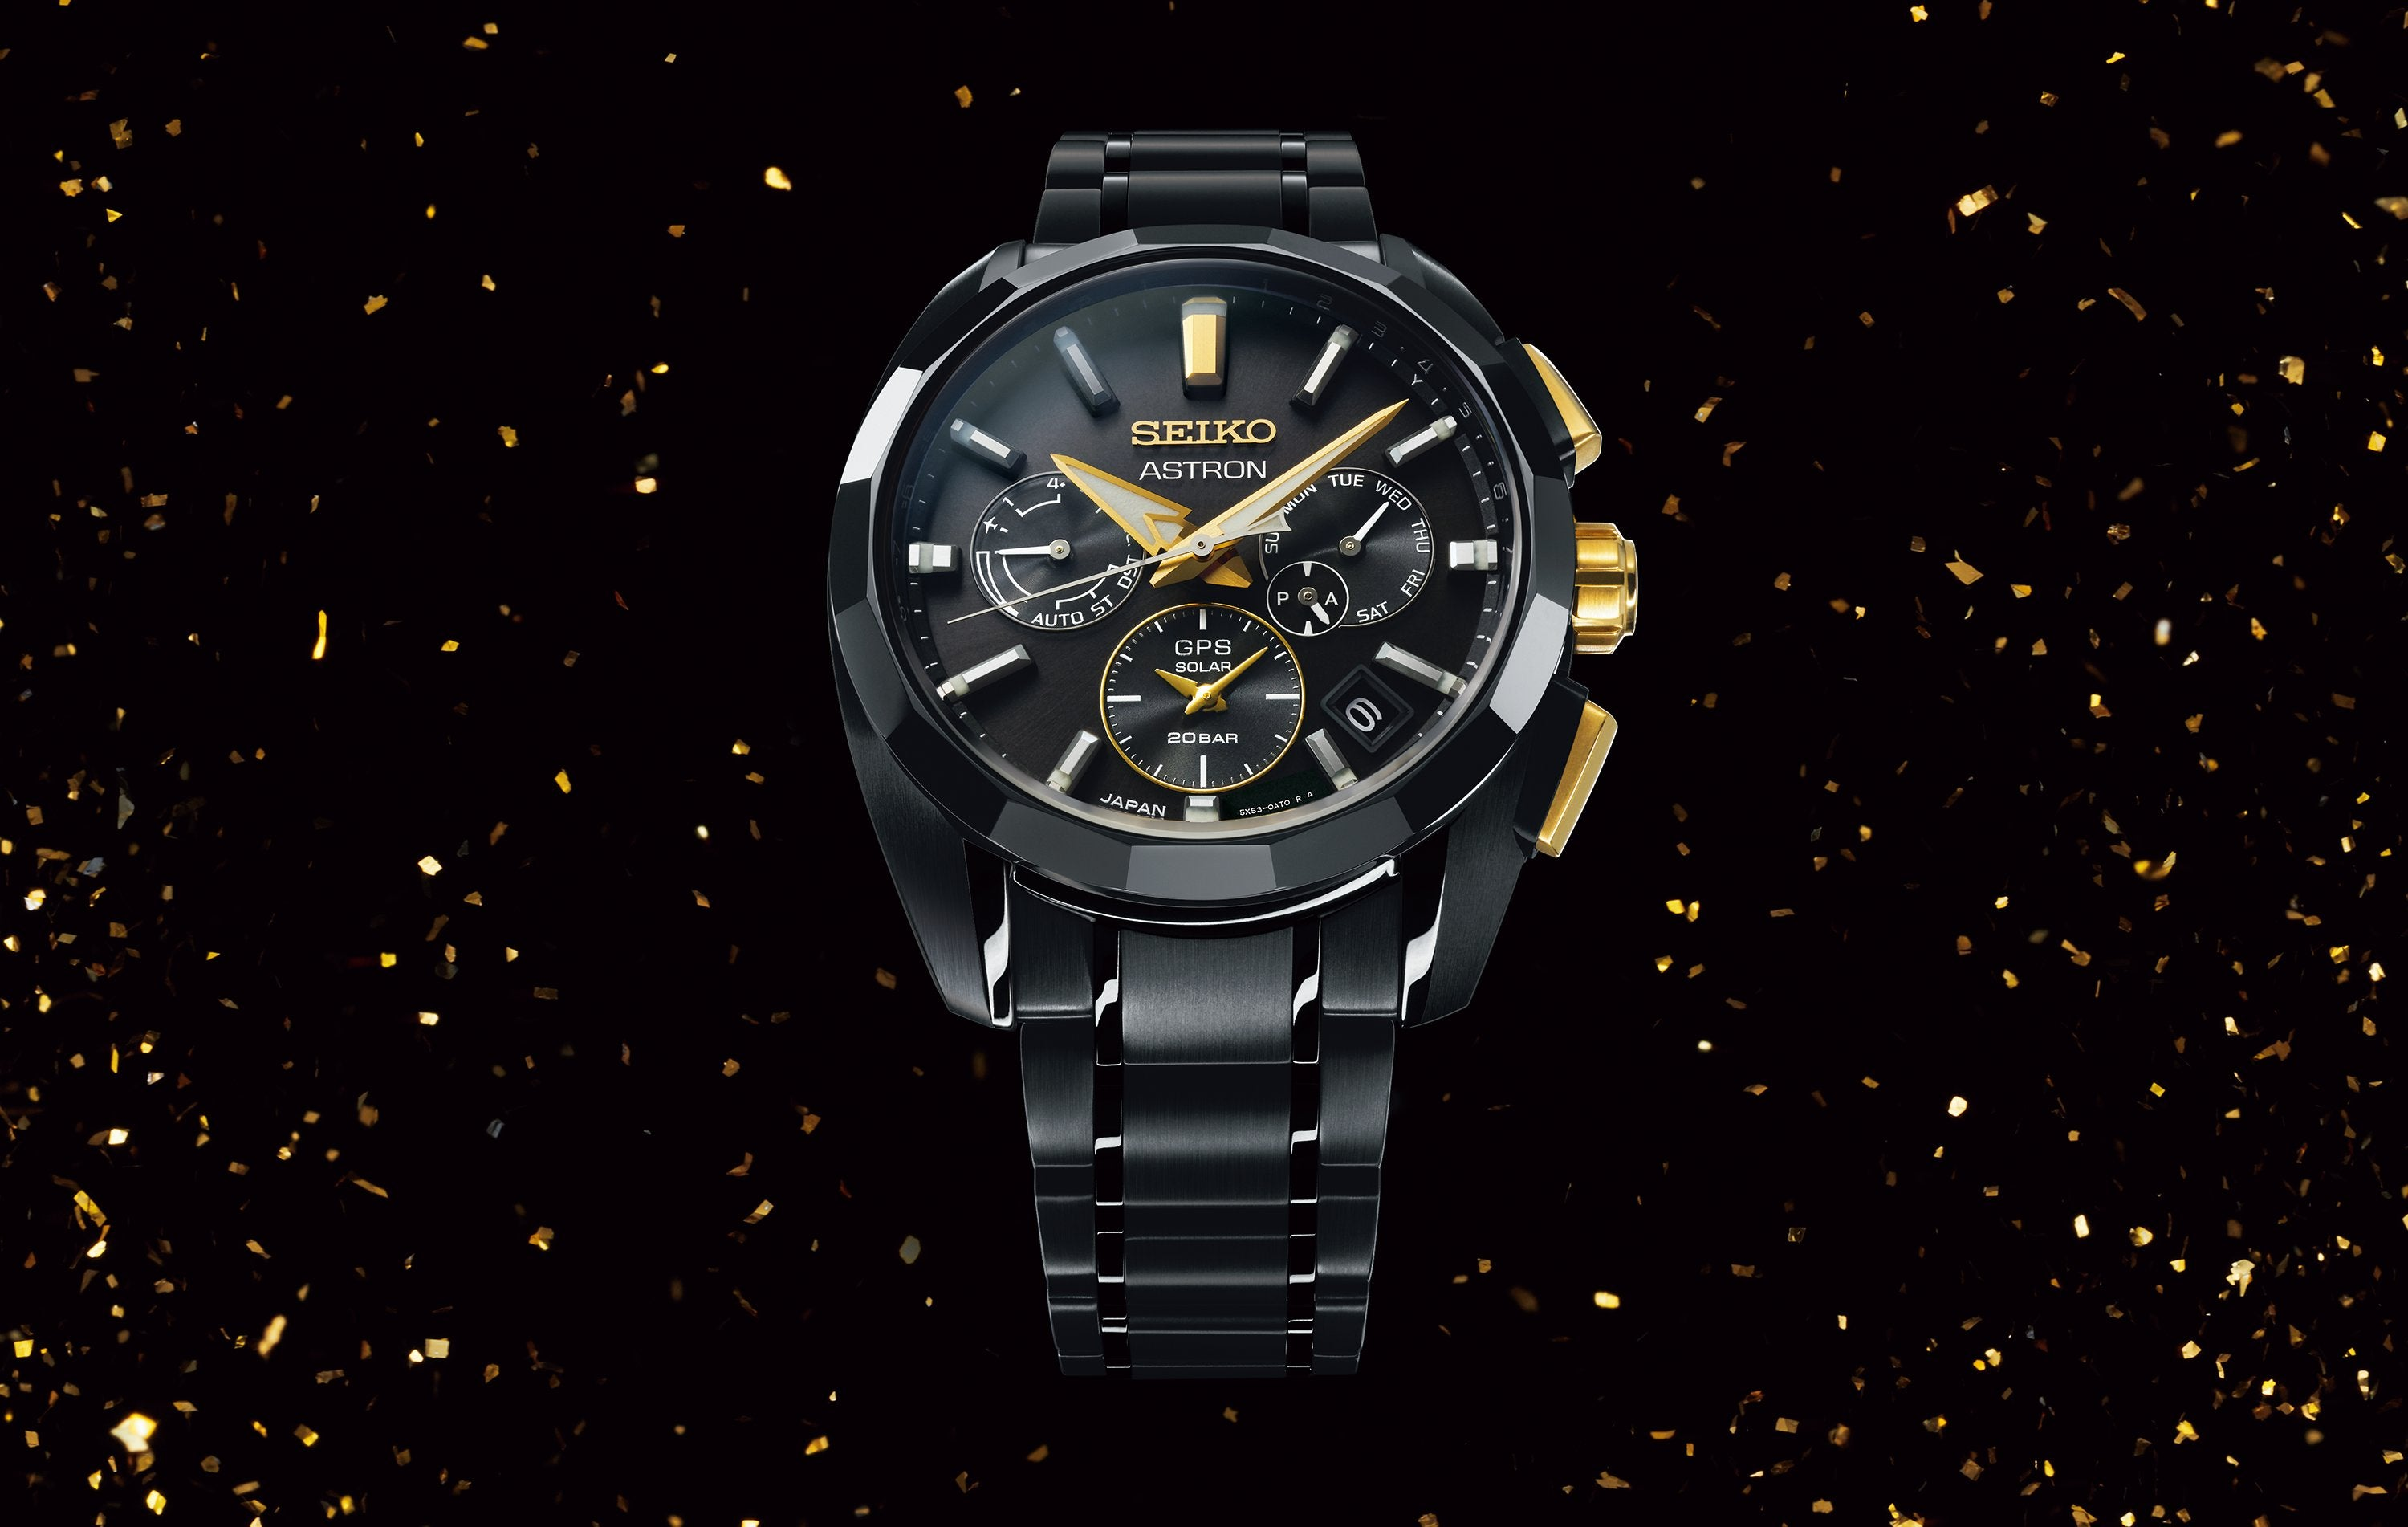 """One step ahead of the rest."" The 160th anniversary of Kintaro Hattori's birth is marked with a special Astron GPS Solar watch."